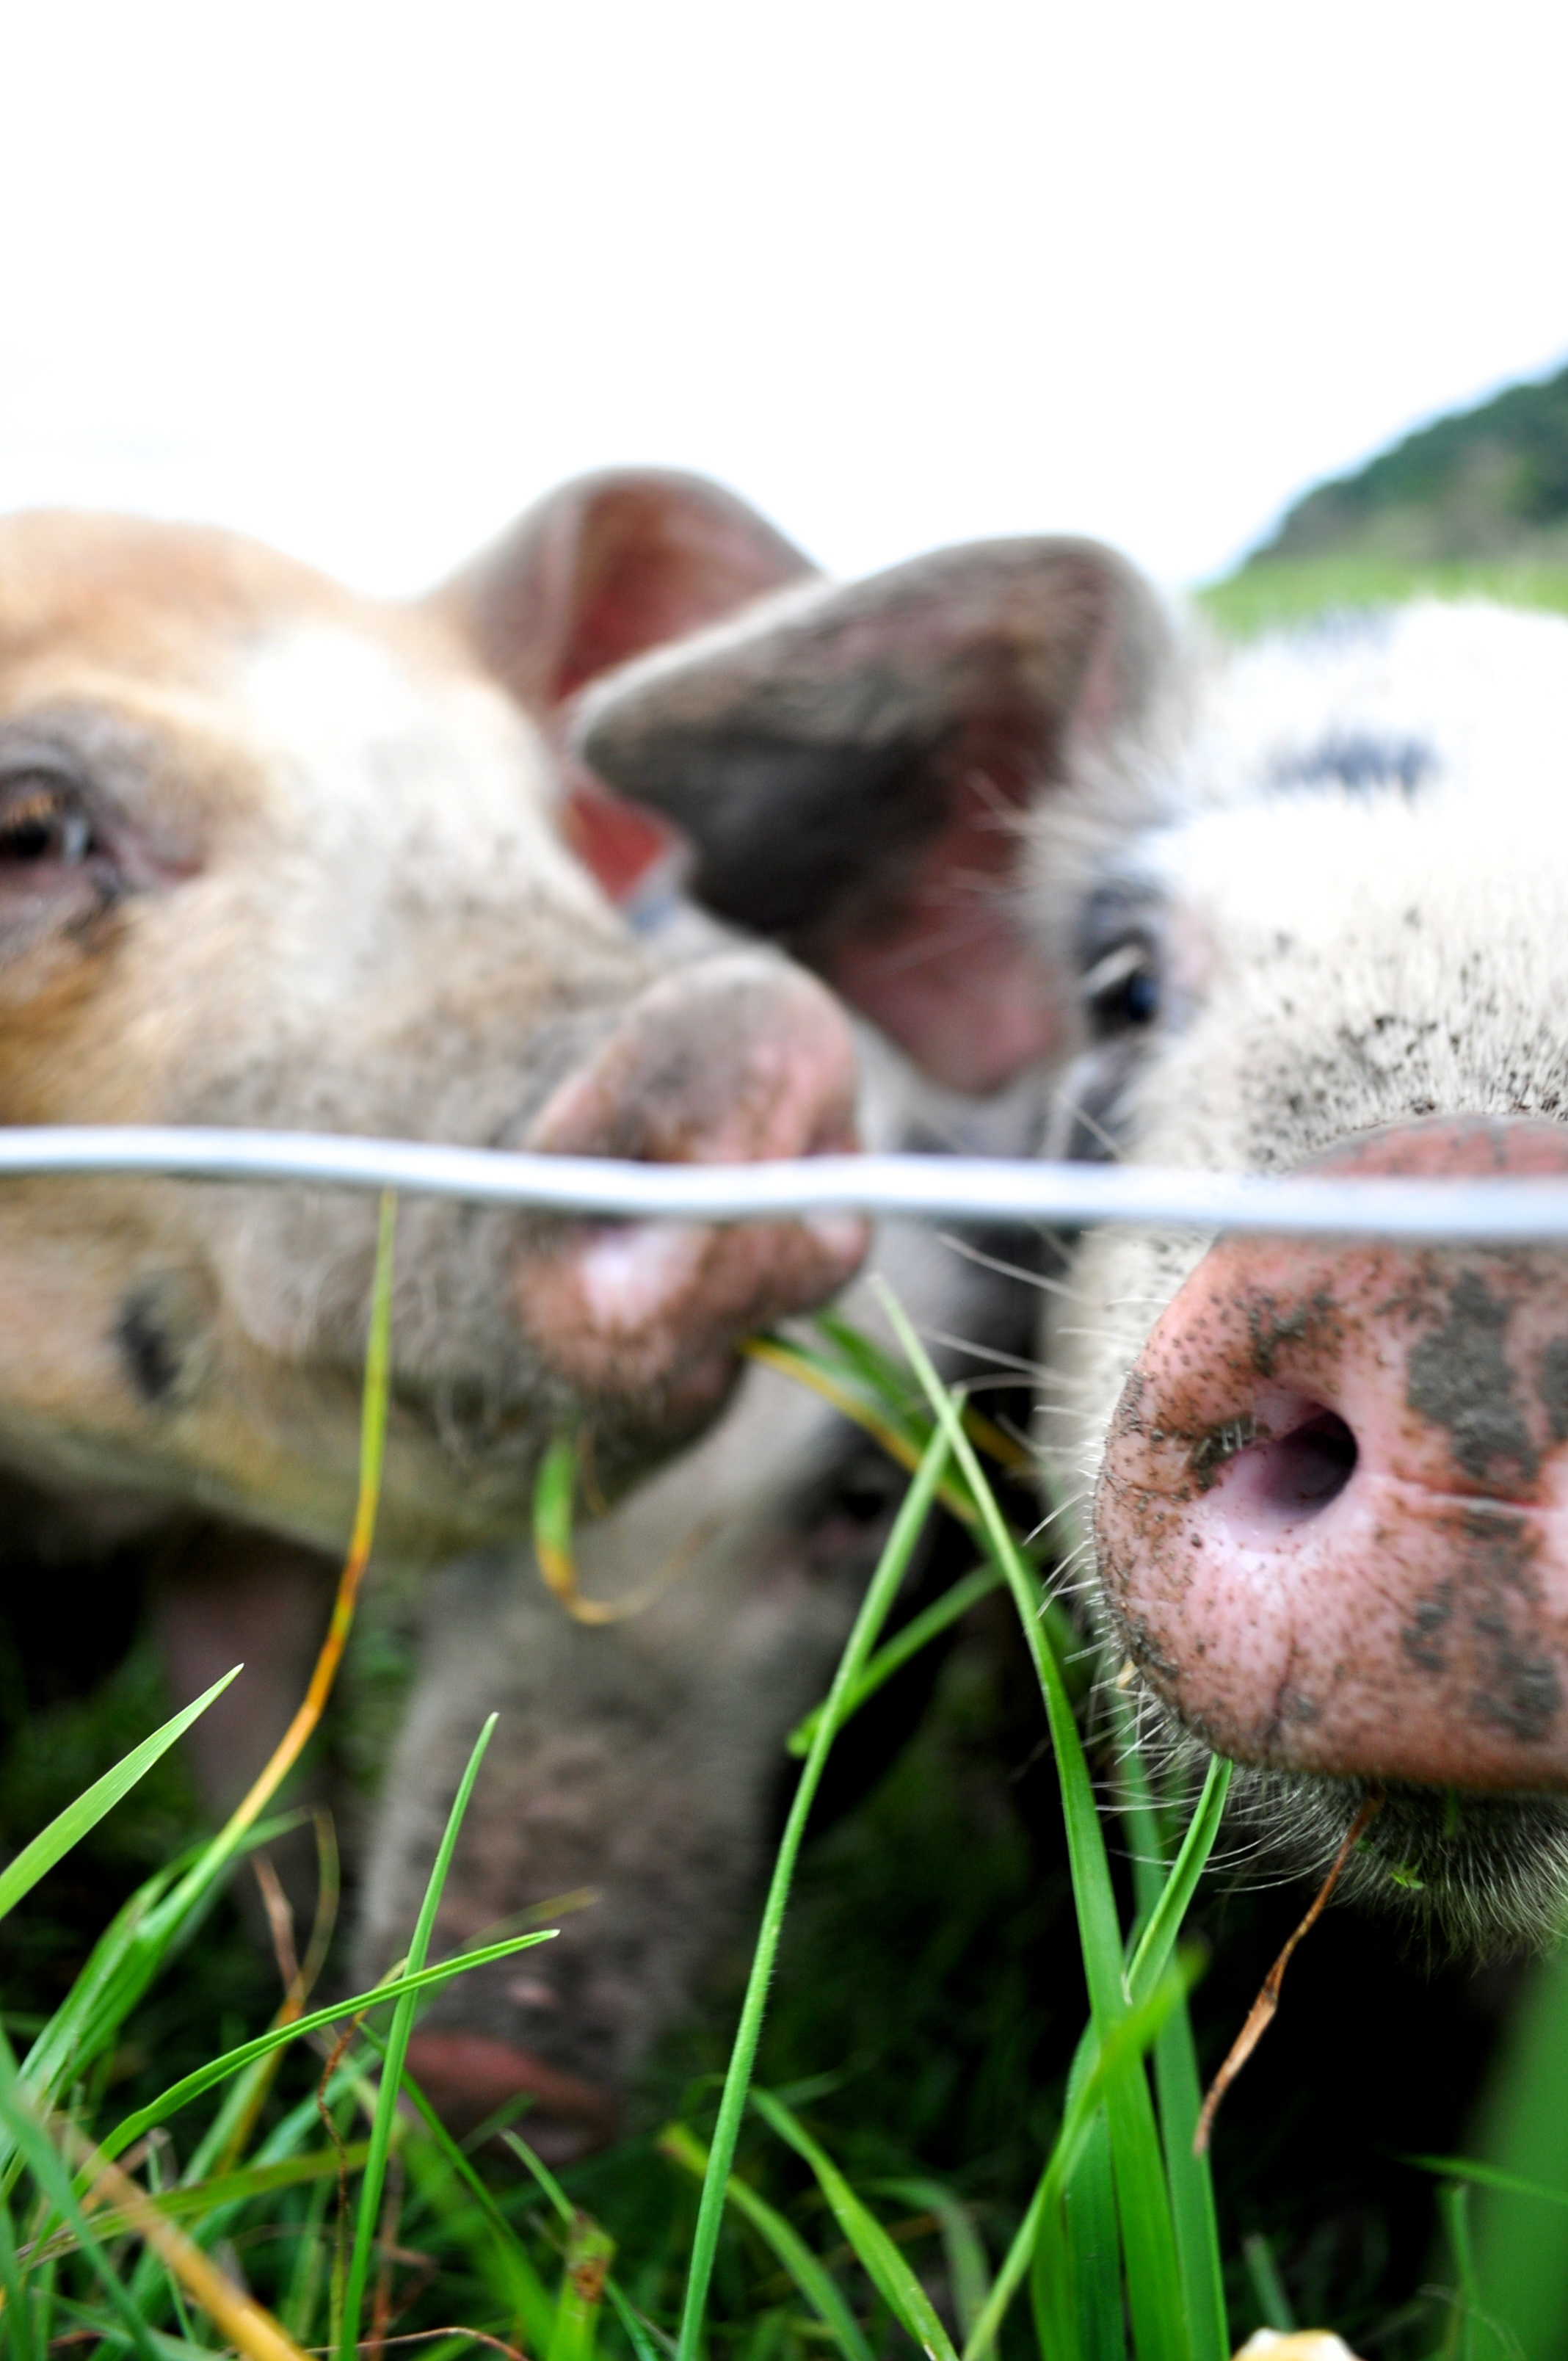 Happy pigs who live outdoors are loaded with vitamin D- this is the most concentrated and natural way for us to get this important nutrient!